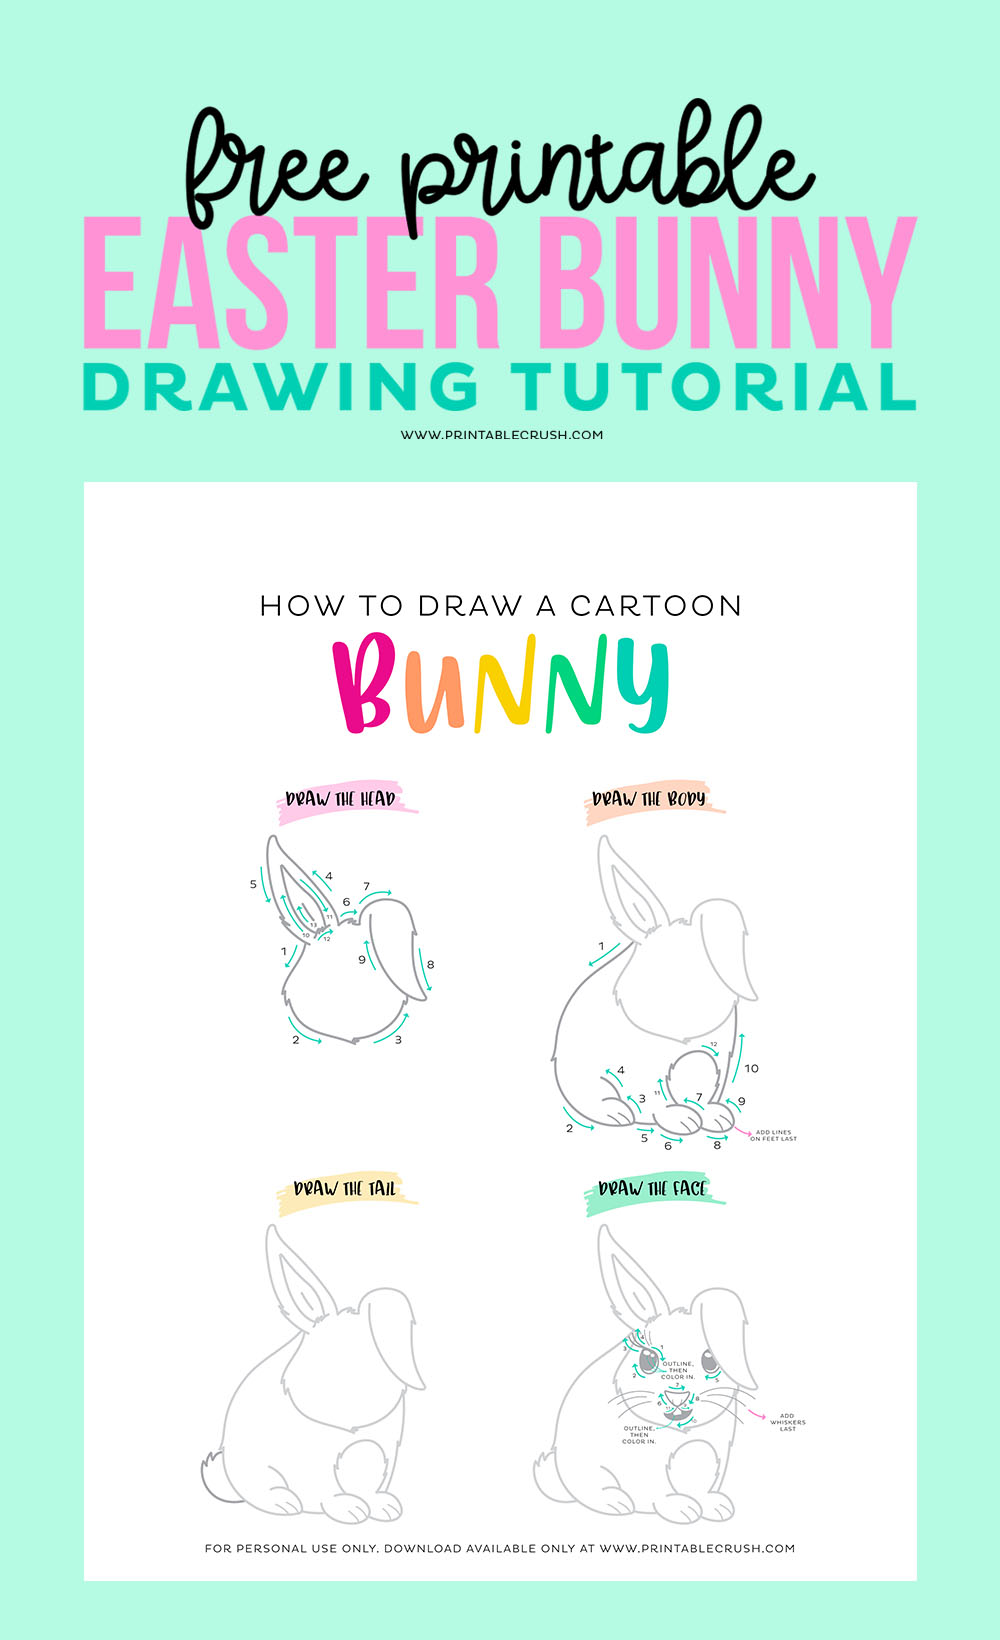 How to Draw an Easter Bunny Free Printable Drawing Tutorial - Cartoon Easter Bunny Drawing Tutorial - Printable Crush